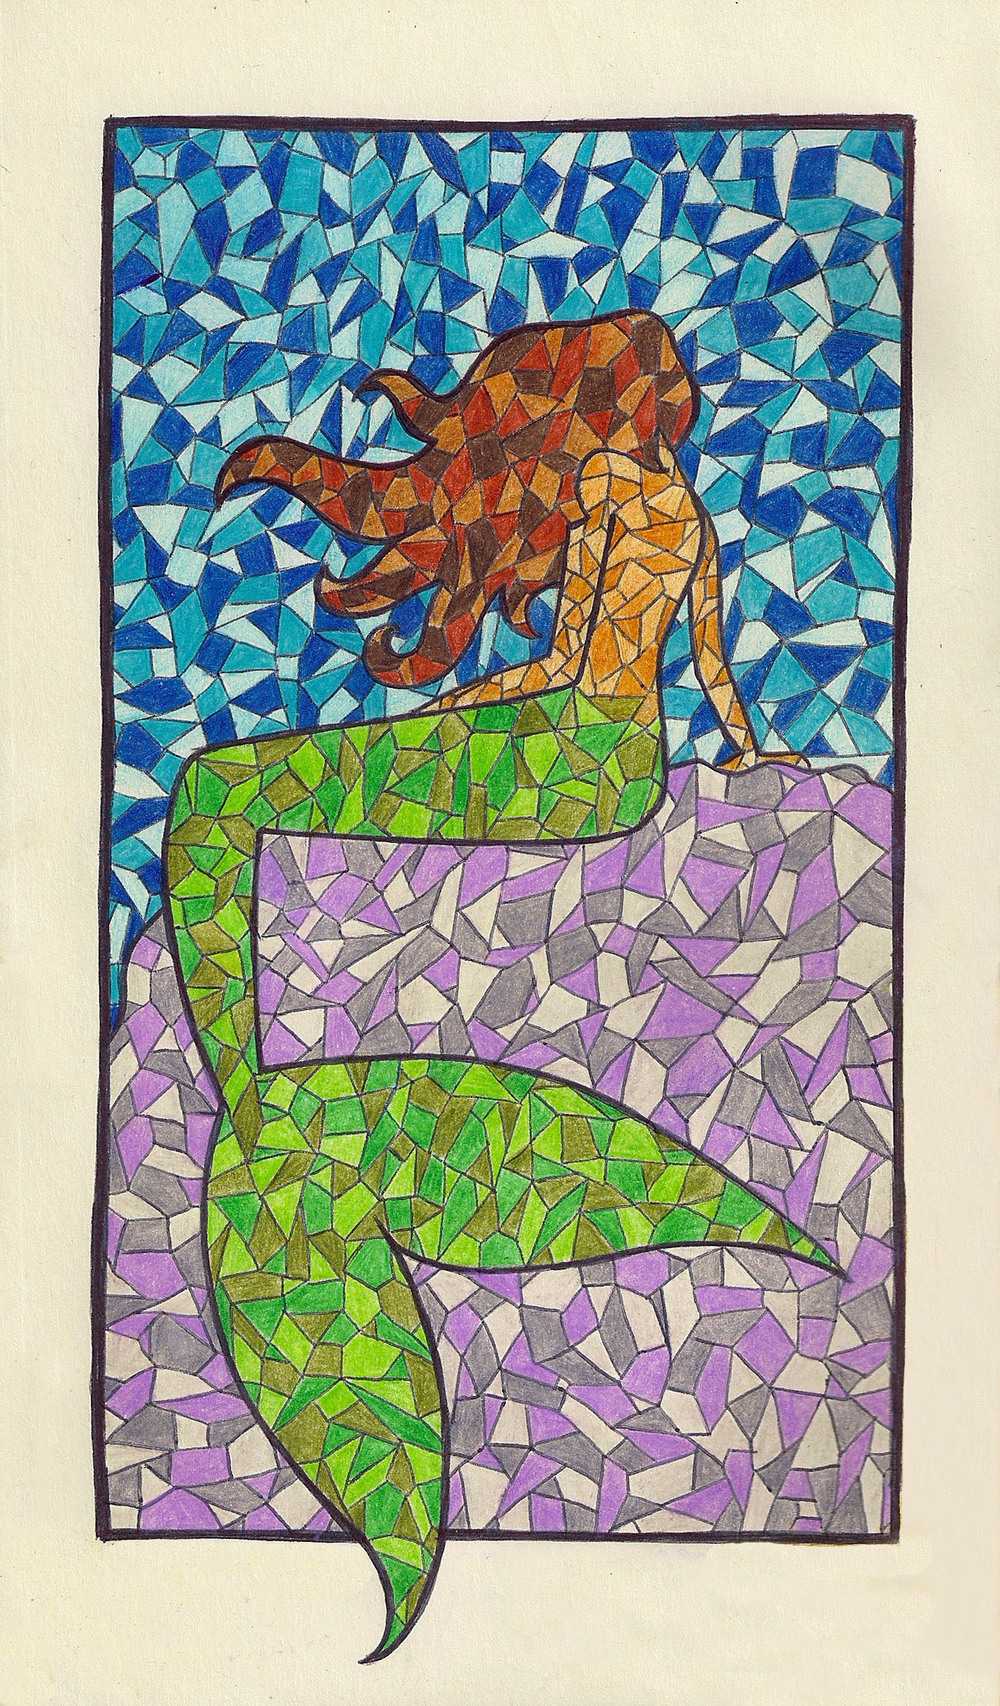 """Stained Glass Mermaid"" by Isabella Ronchetti"